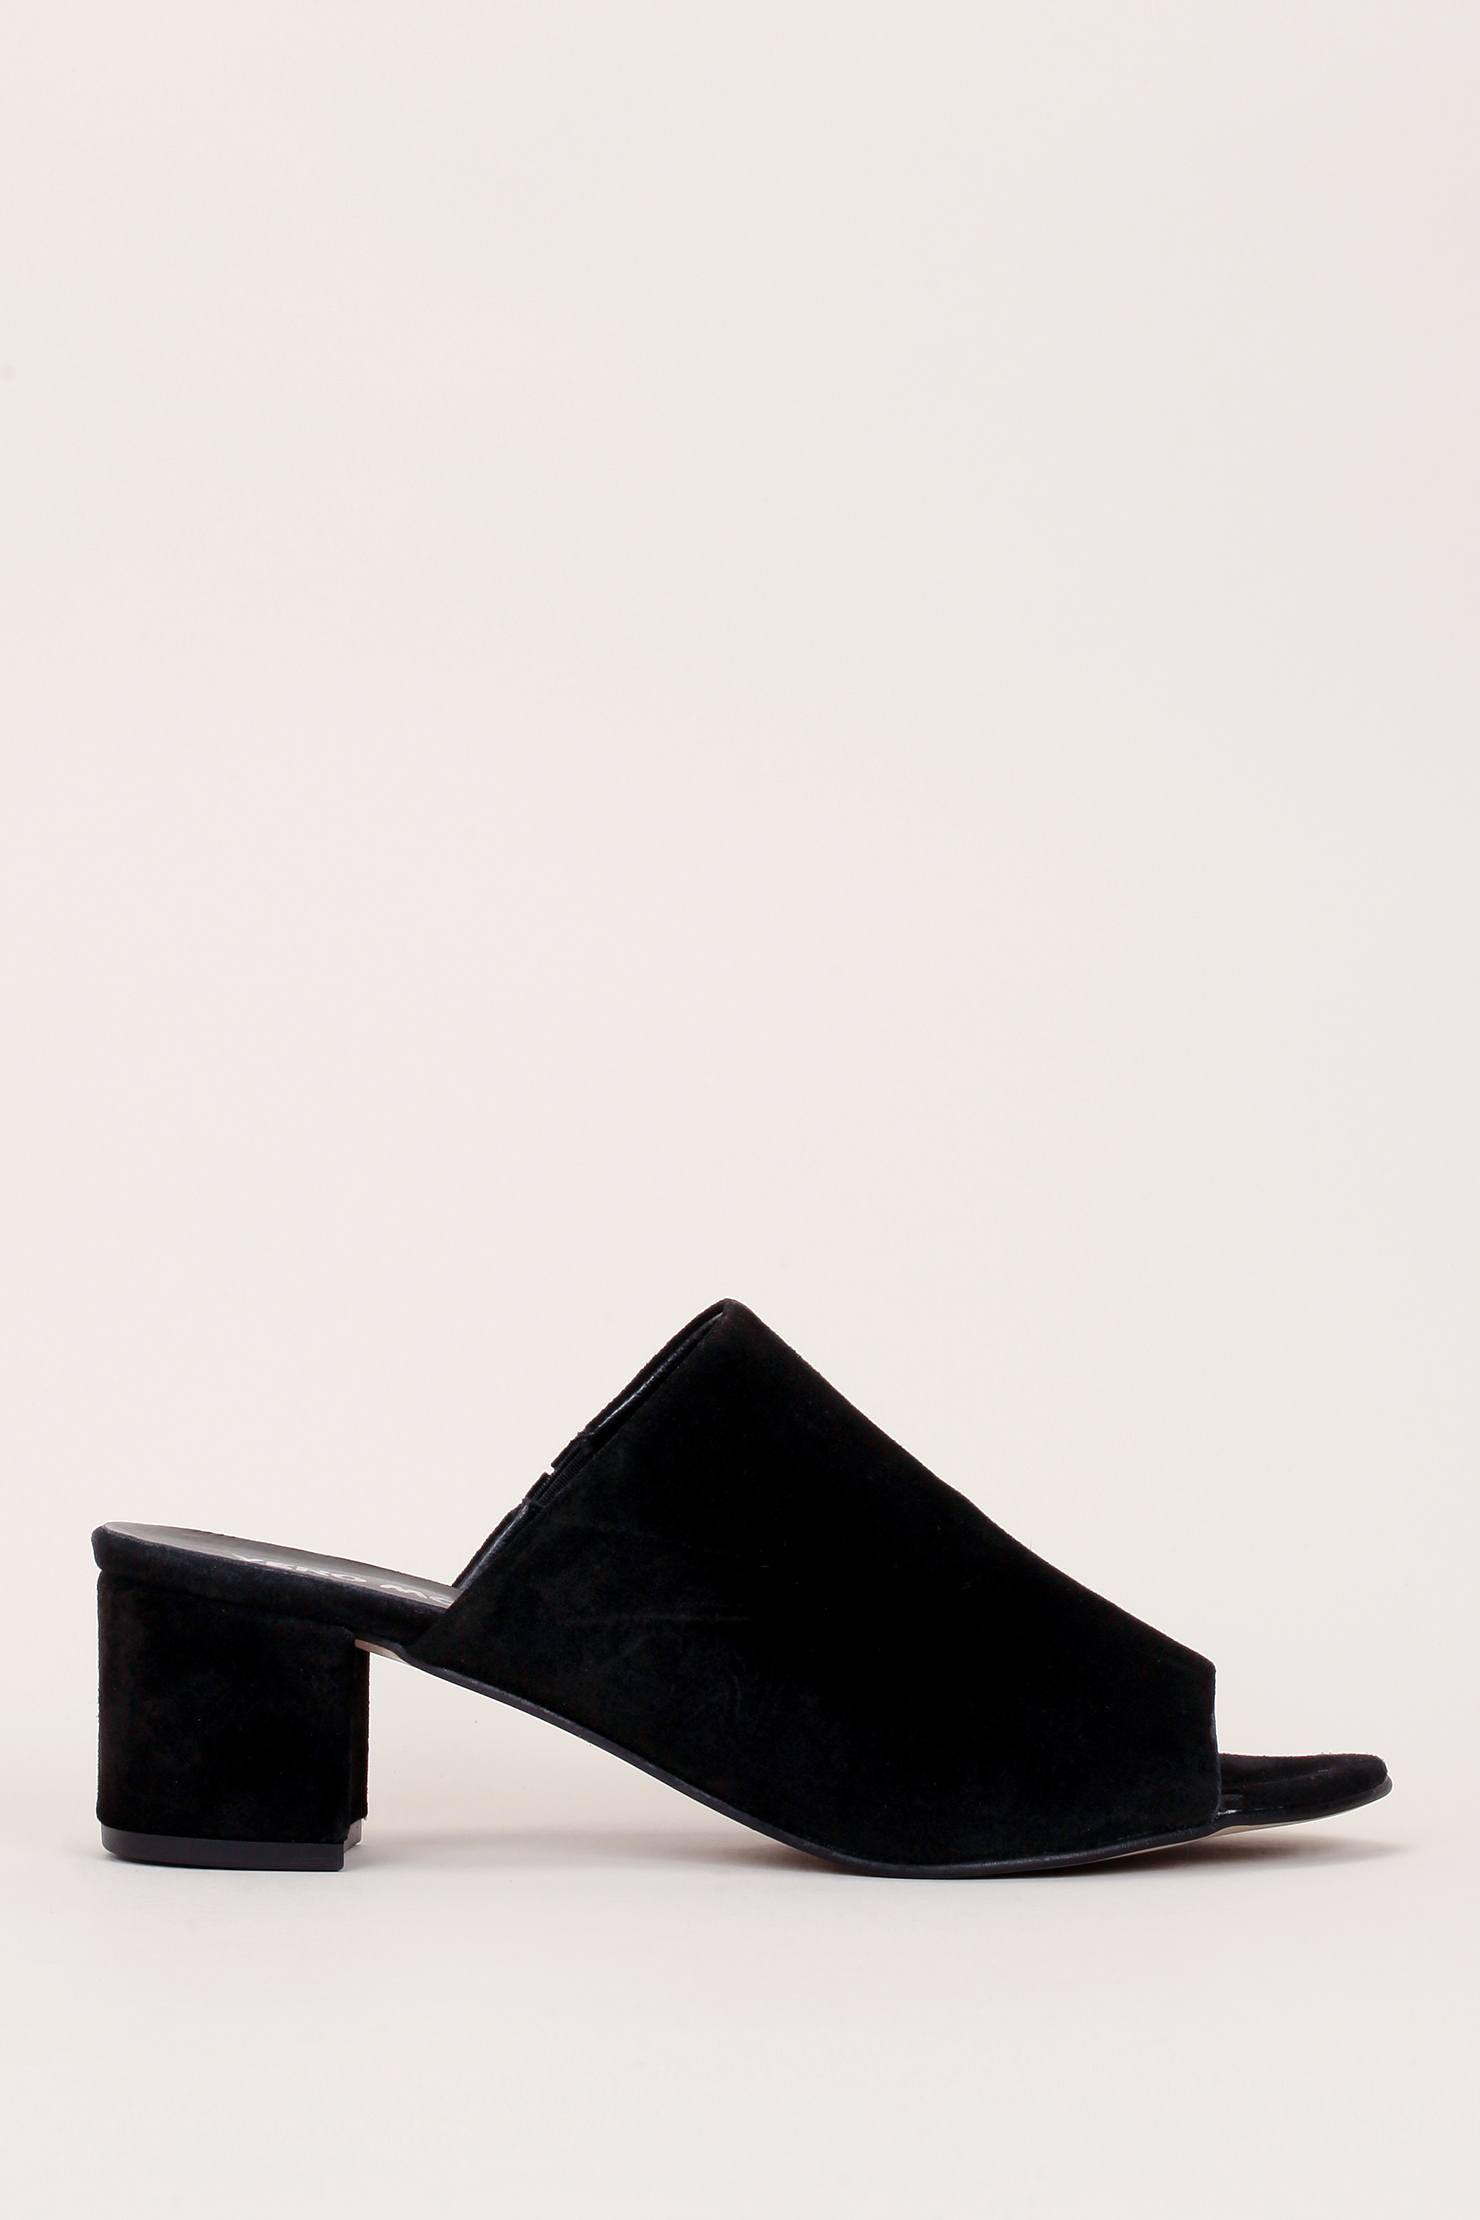 Vero Moda Real leather heeled mules SxwPOL